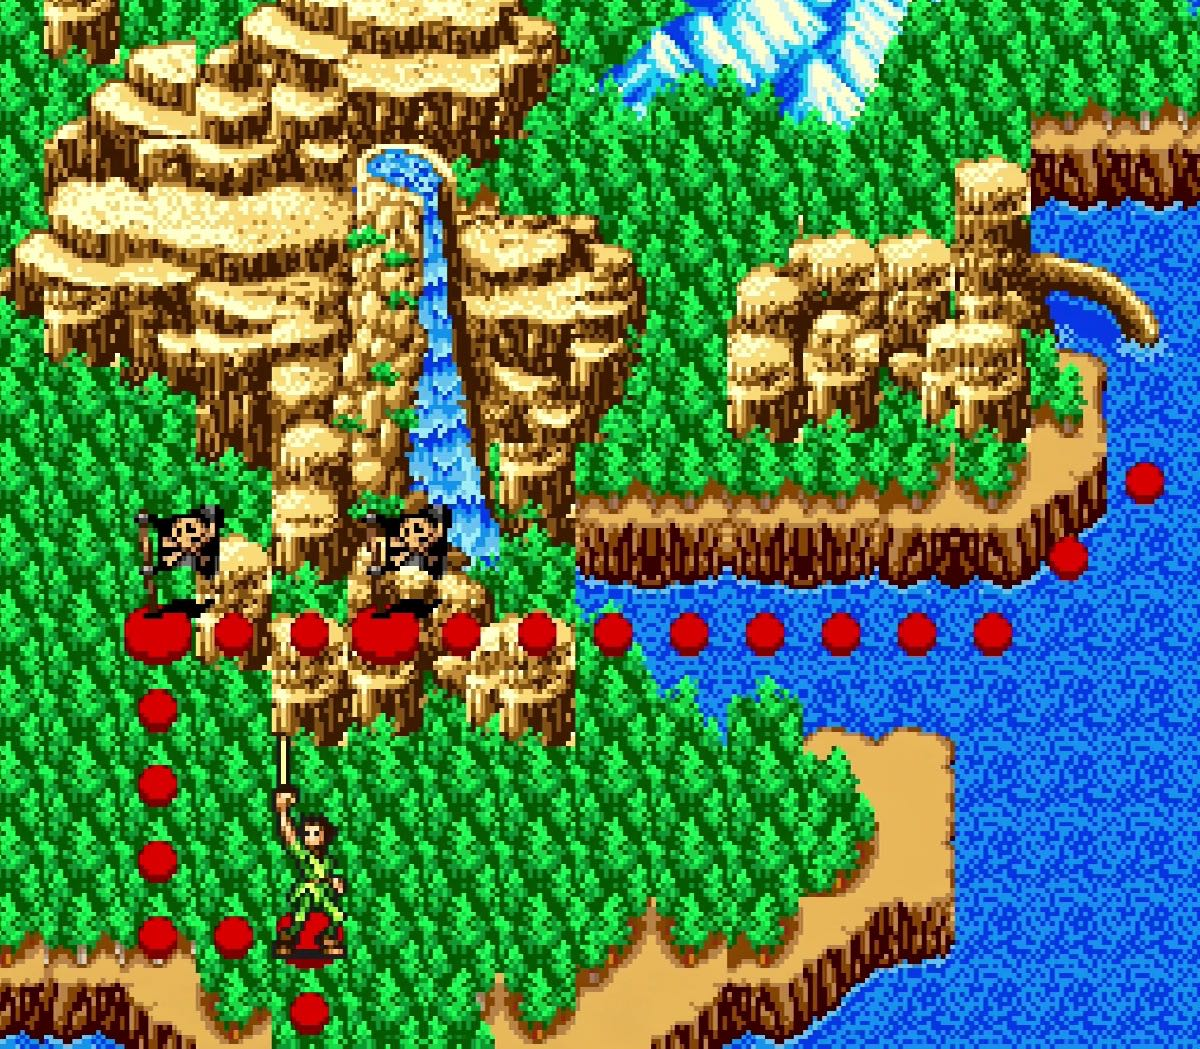 Final Fantasy 1 GBA Screen Shot 2016-08-25, 12.18 PM 1